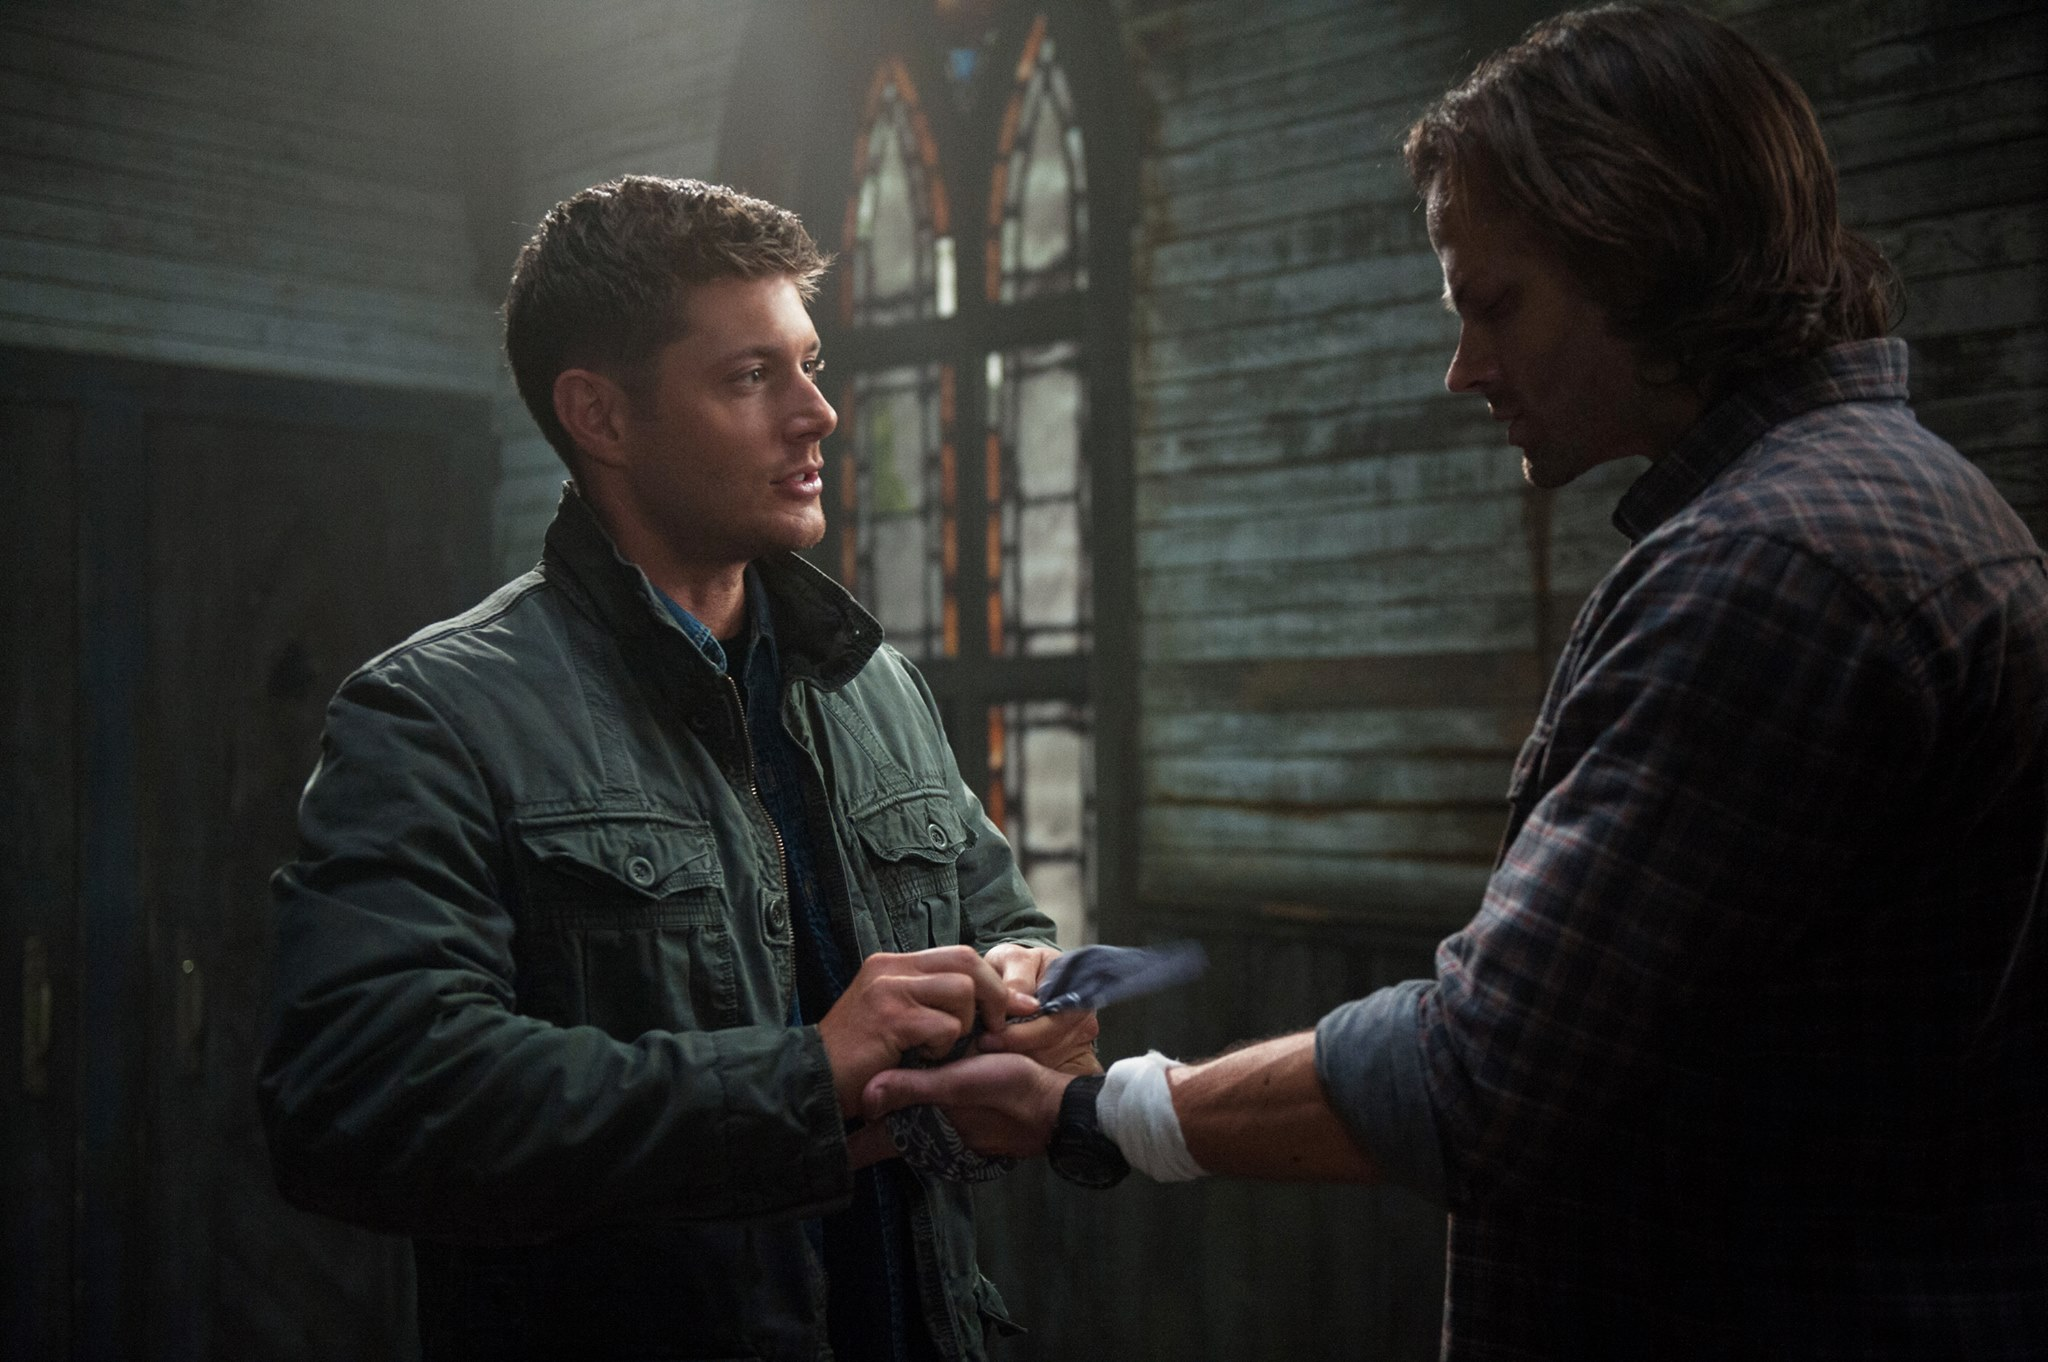 Supernatural - 08x23 - Sacrifice